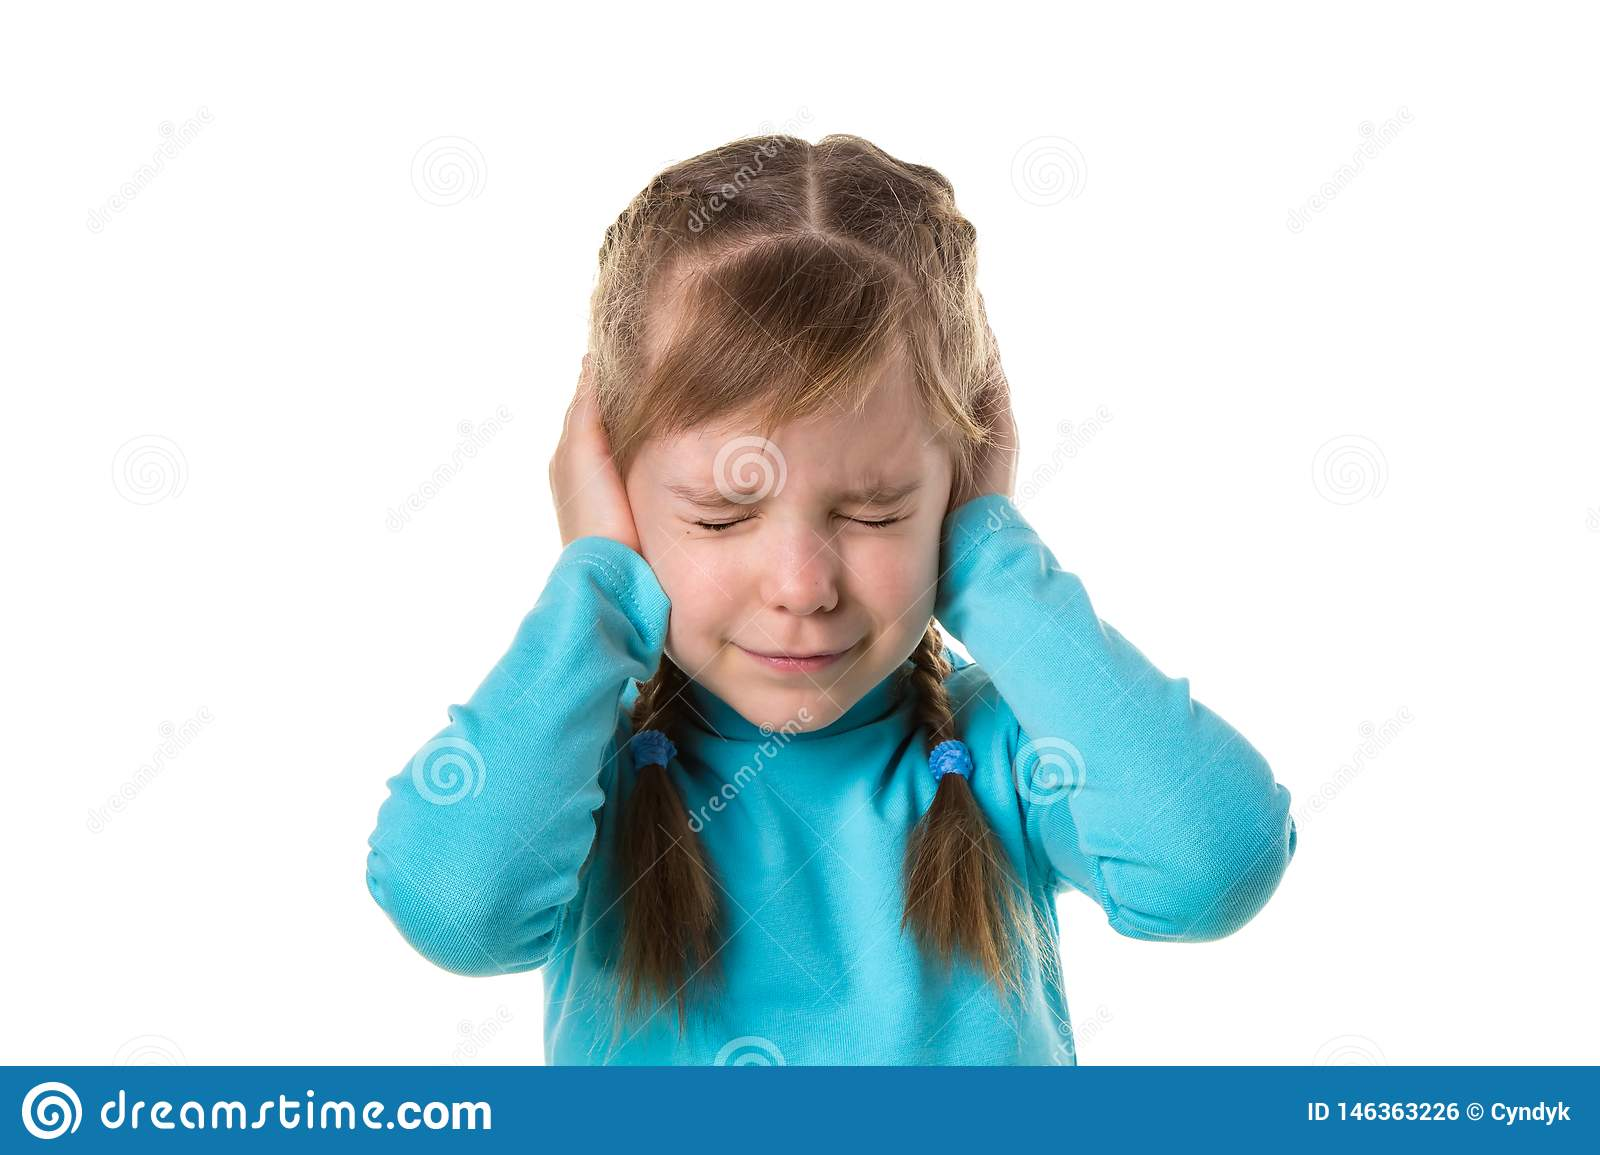 Blonde caucasian young girl closing ears with hands, suffering from noise. Isolated over white background